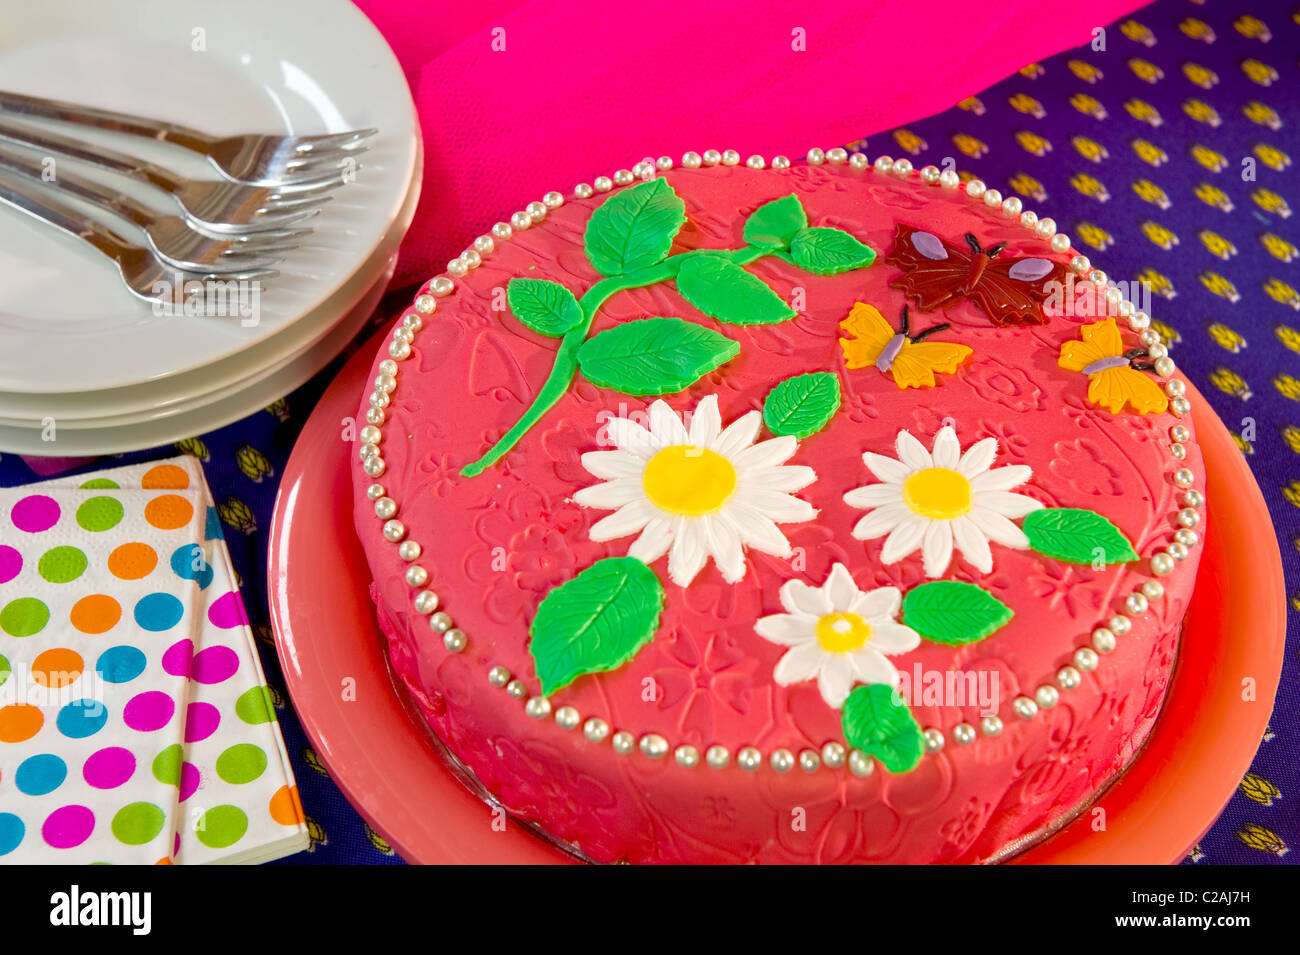 Pink Birthday Cake Flowers Butterflies Stock Photos Pink Birthday